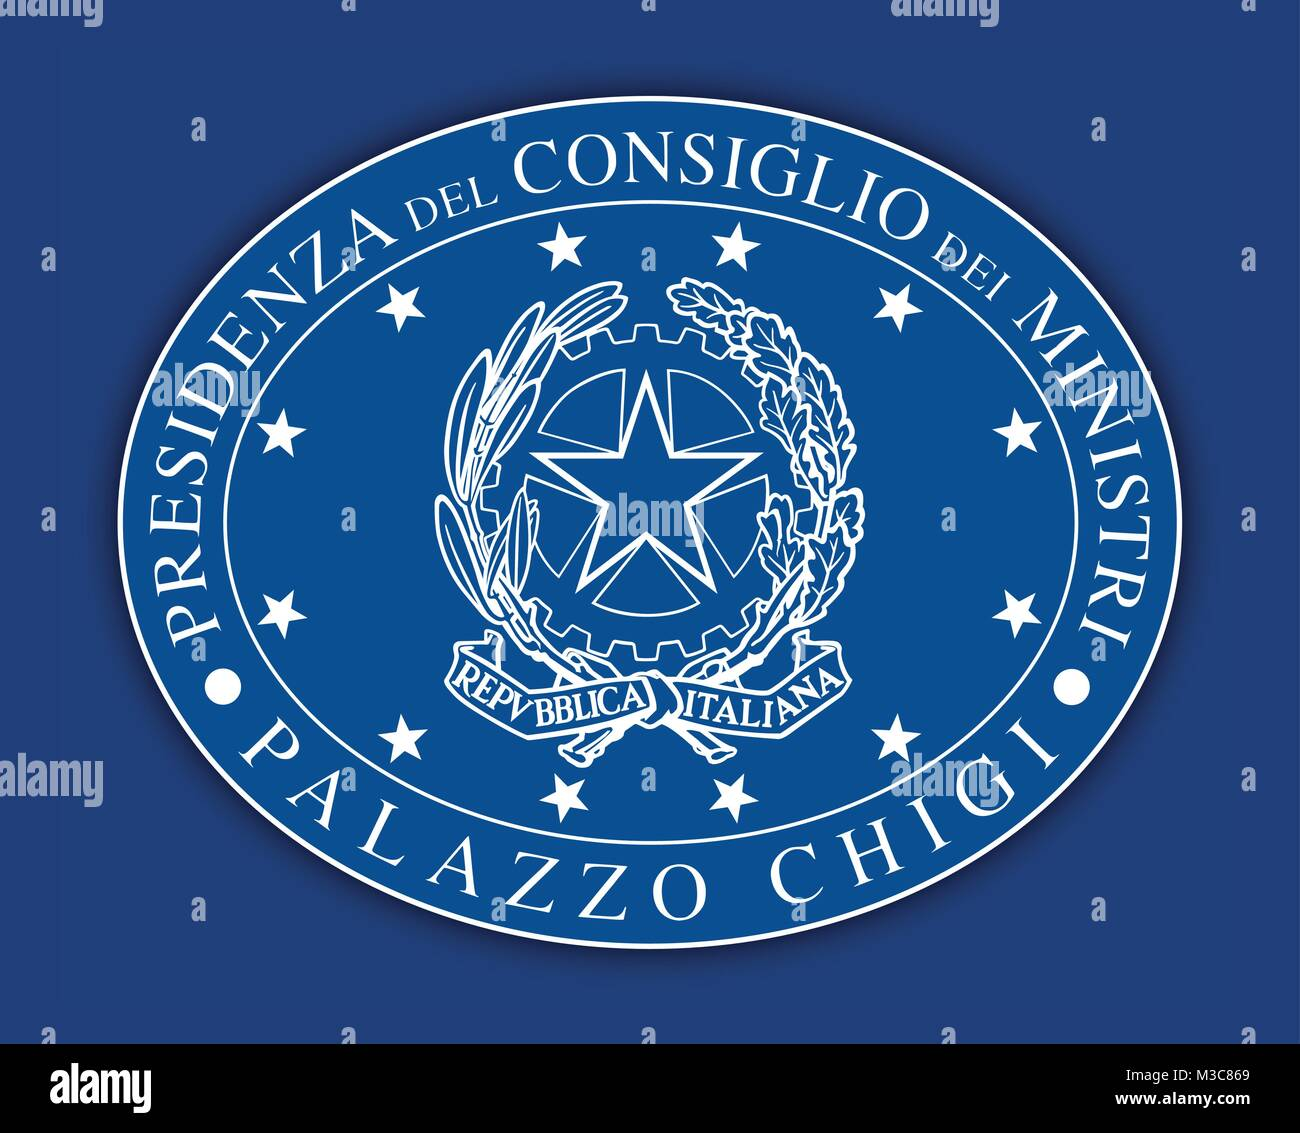 Italian government oval seal symbol, Rome, Italy - Stock Vector